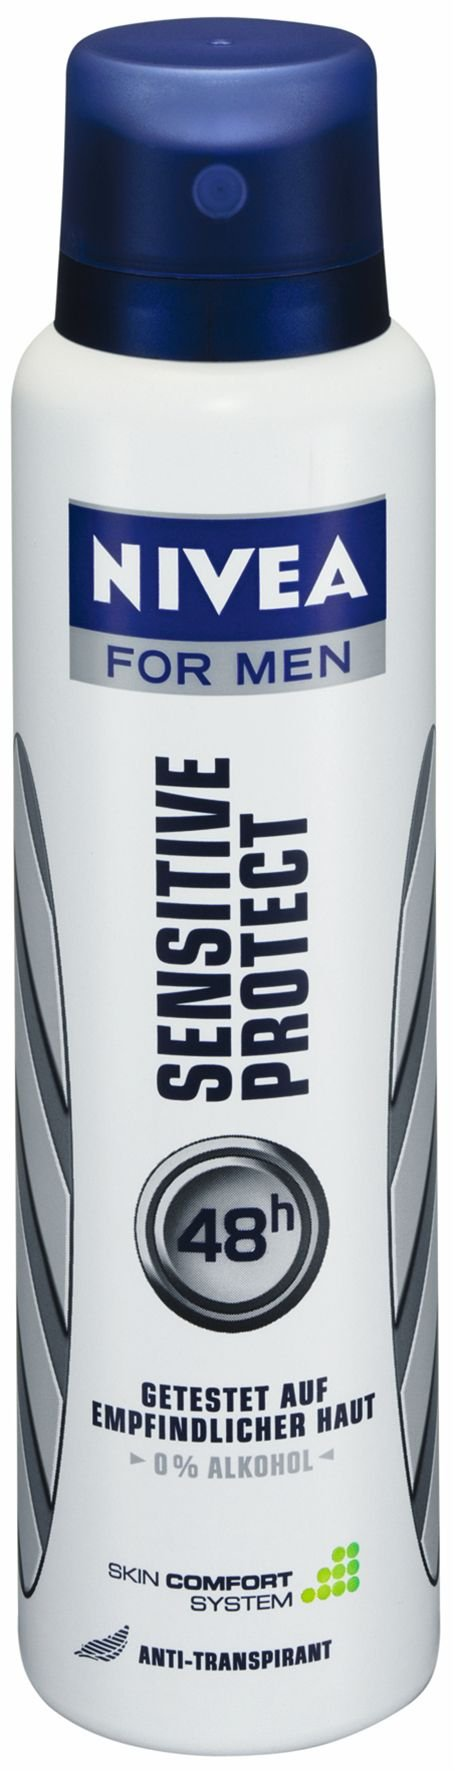 Nivea for Men Sensitive Protect Anti-Transpirant Deodorant Spray, 150 Ml